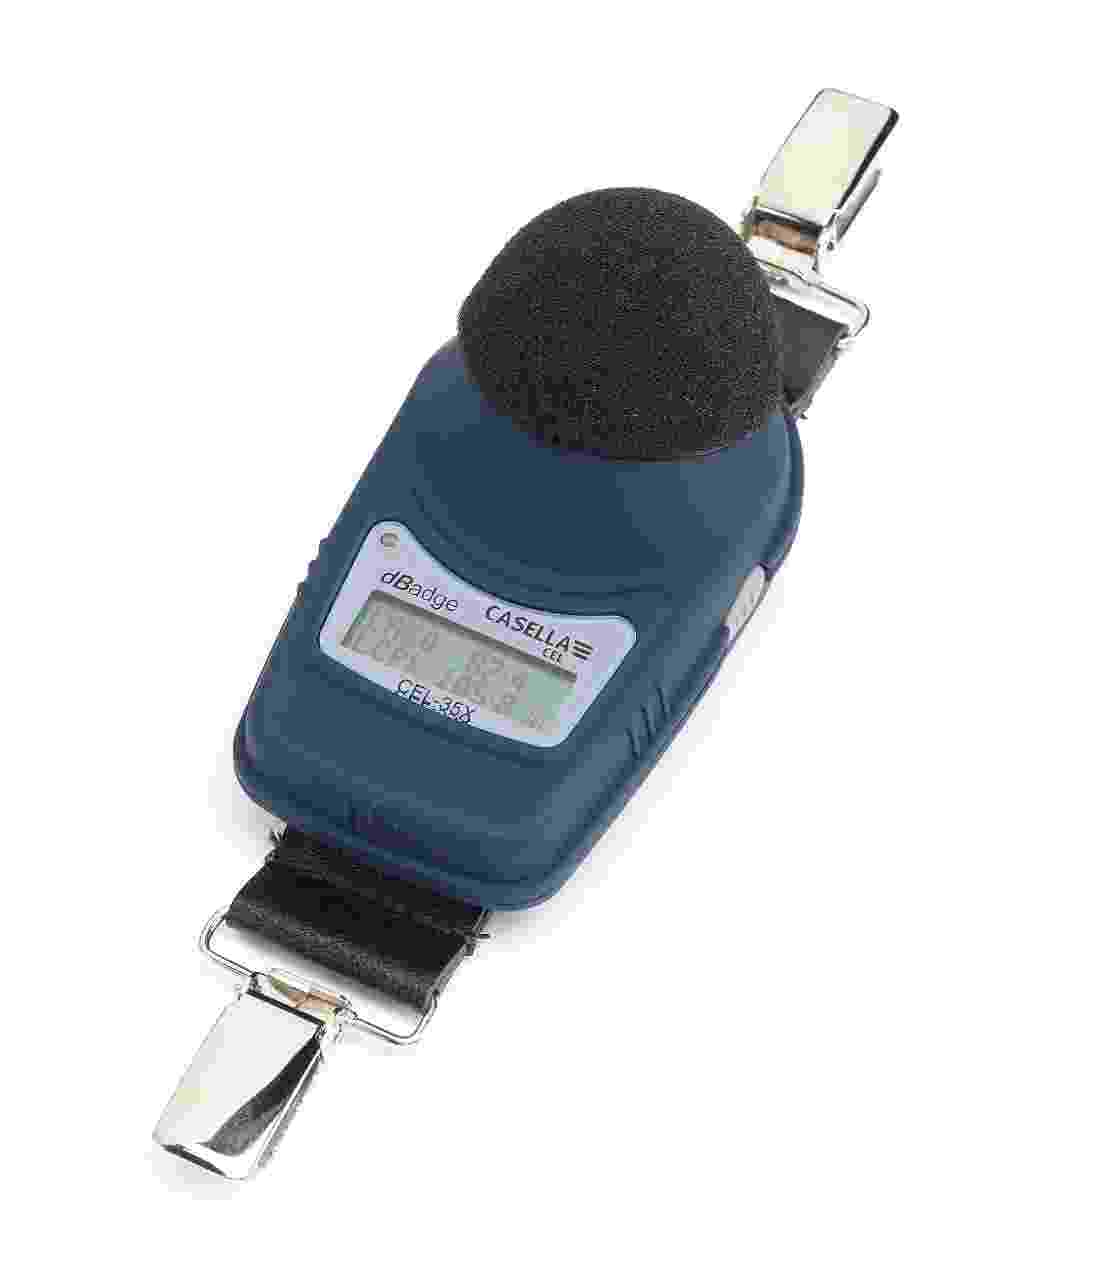 The dbadge2 is ideal for making noise exposure measurements. It is a shoulder worn dose meter that measures all workplace parameters simultaneously.